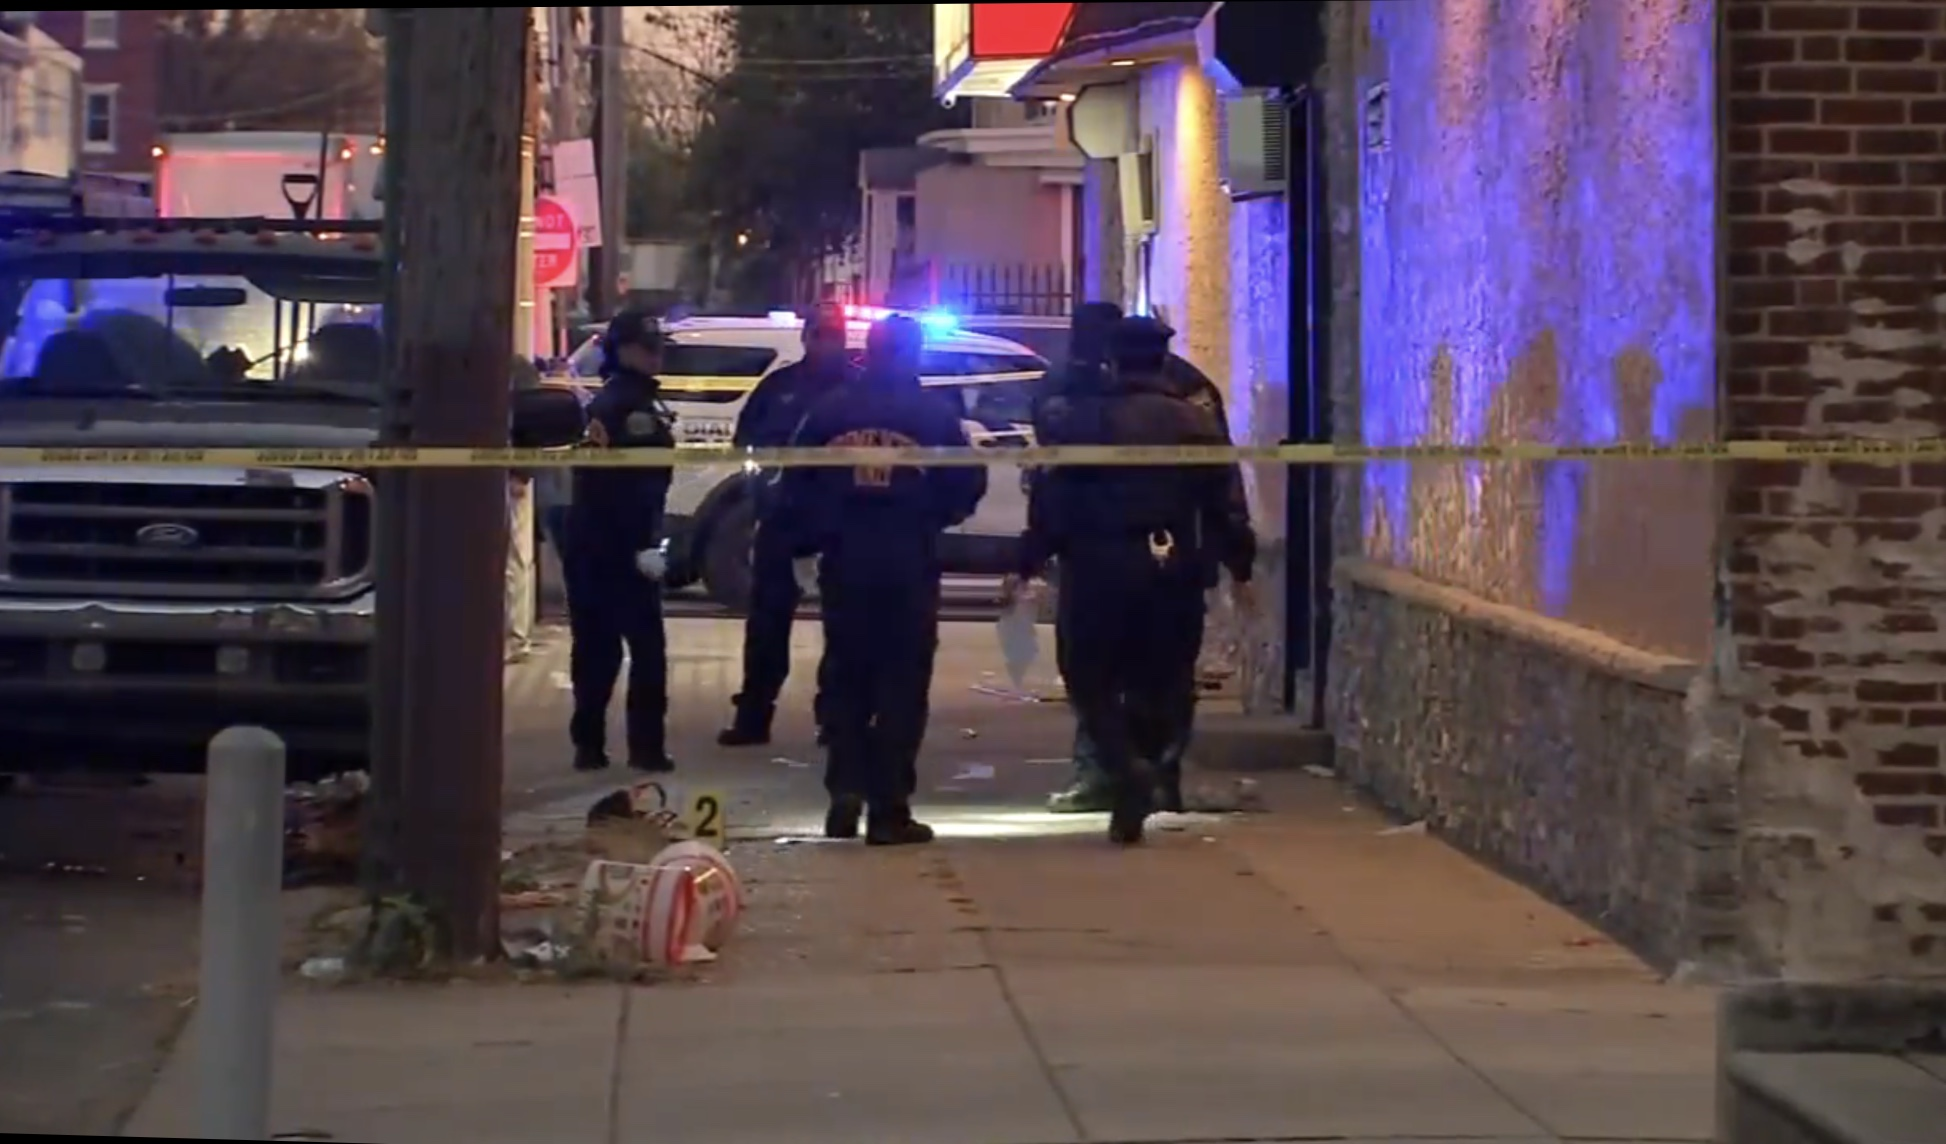 Philadelphia police investigate a crime scene after a 10-year-old boy was hit in a drive-by shooting on Nov. 6, 2019. ABC News screenshot.